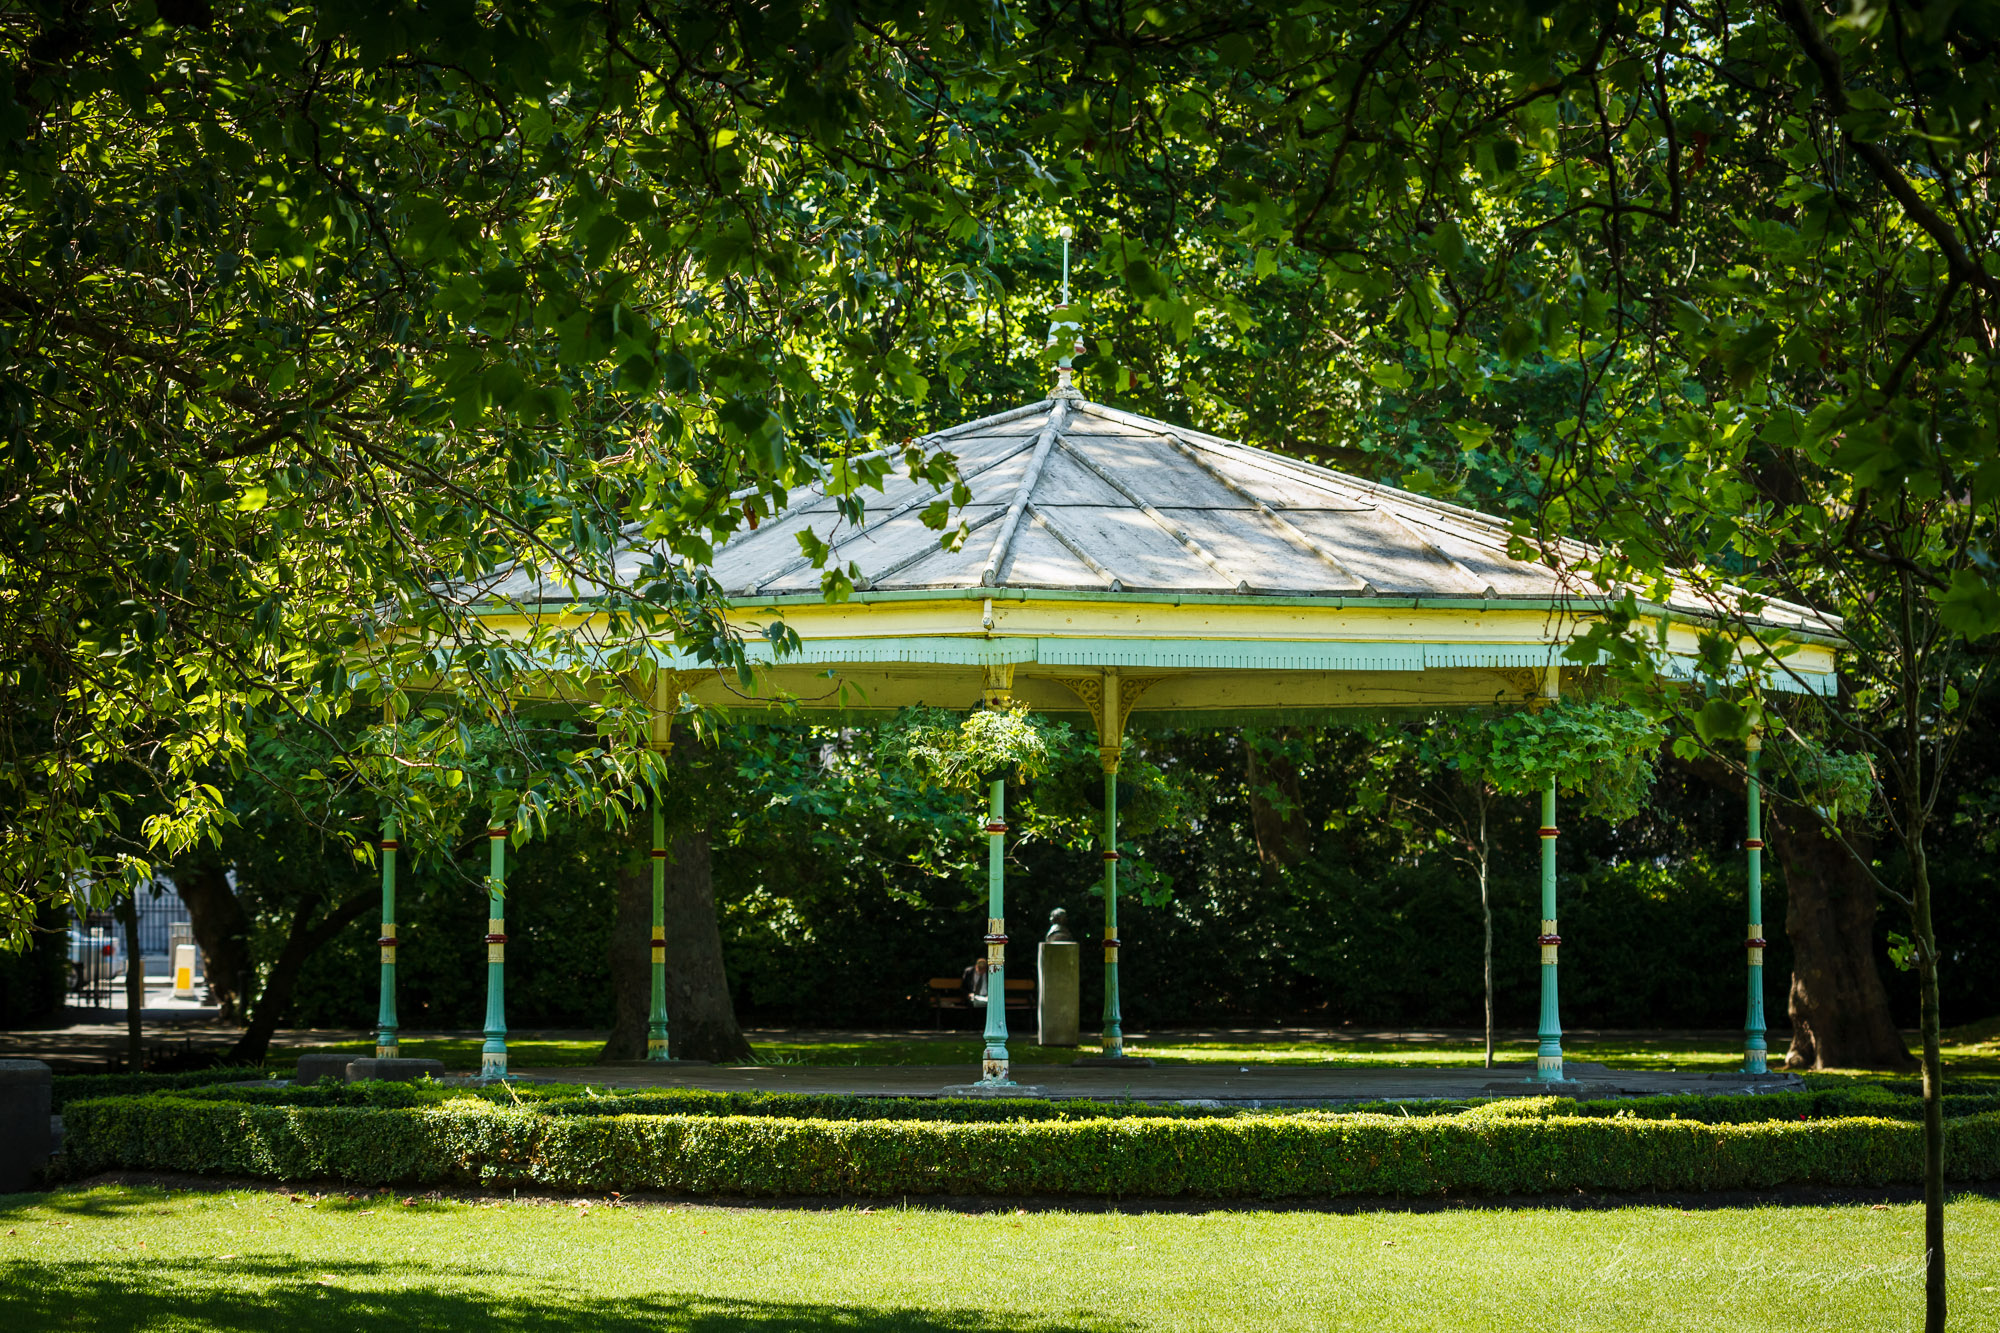 Band Stand in Stephen's Green